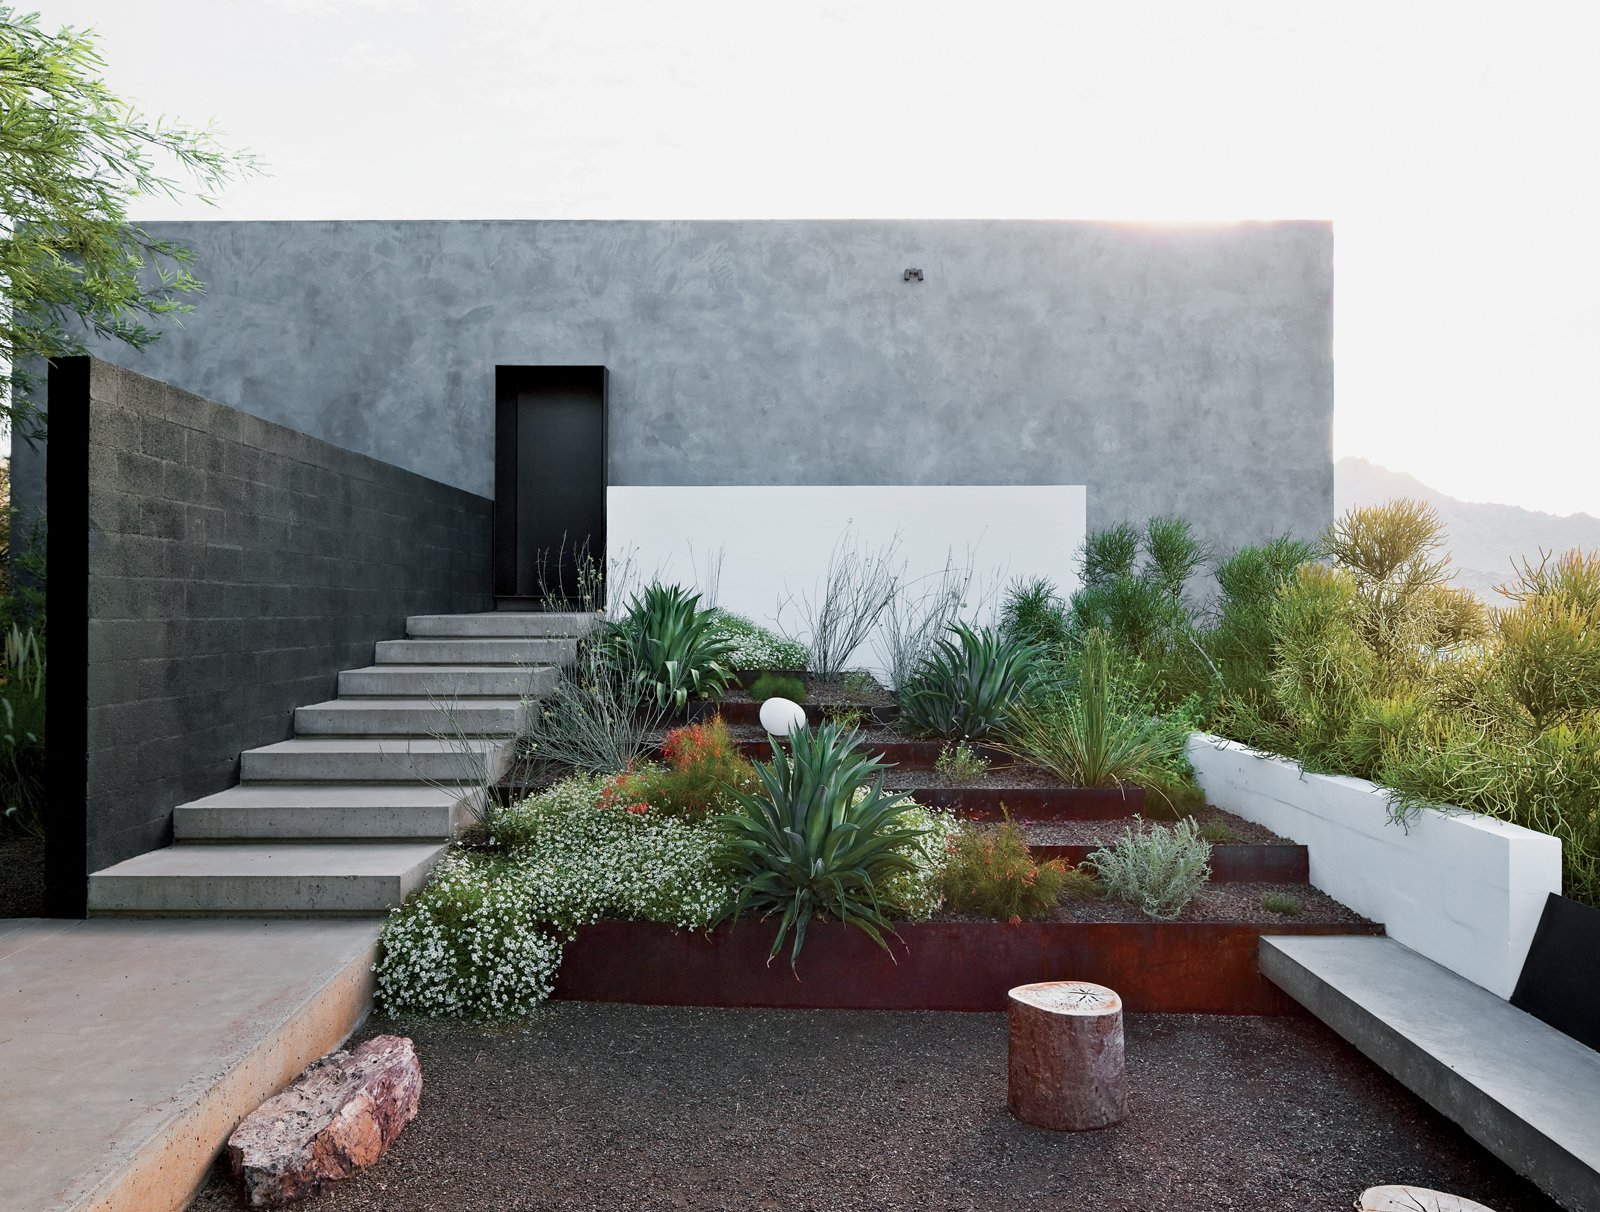 For the landscape design, Burnette sought to maintain the property's natural vegetation and rocky ground surface.  Landscapes Designed with Native Plants by Zachary Edelson from Just Deserts: 5 Standout Homes in Arid Climates